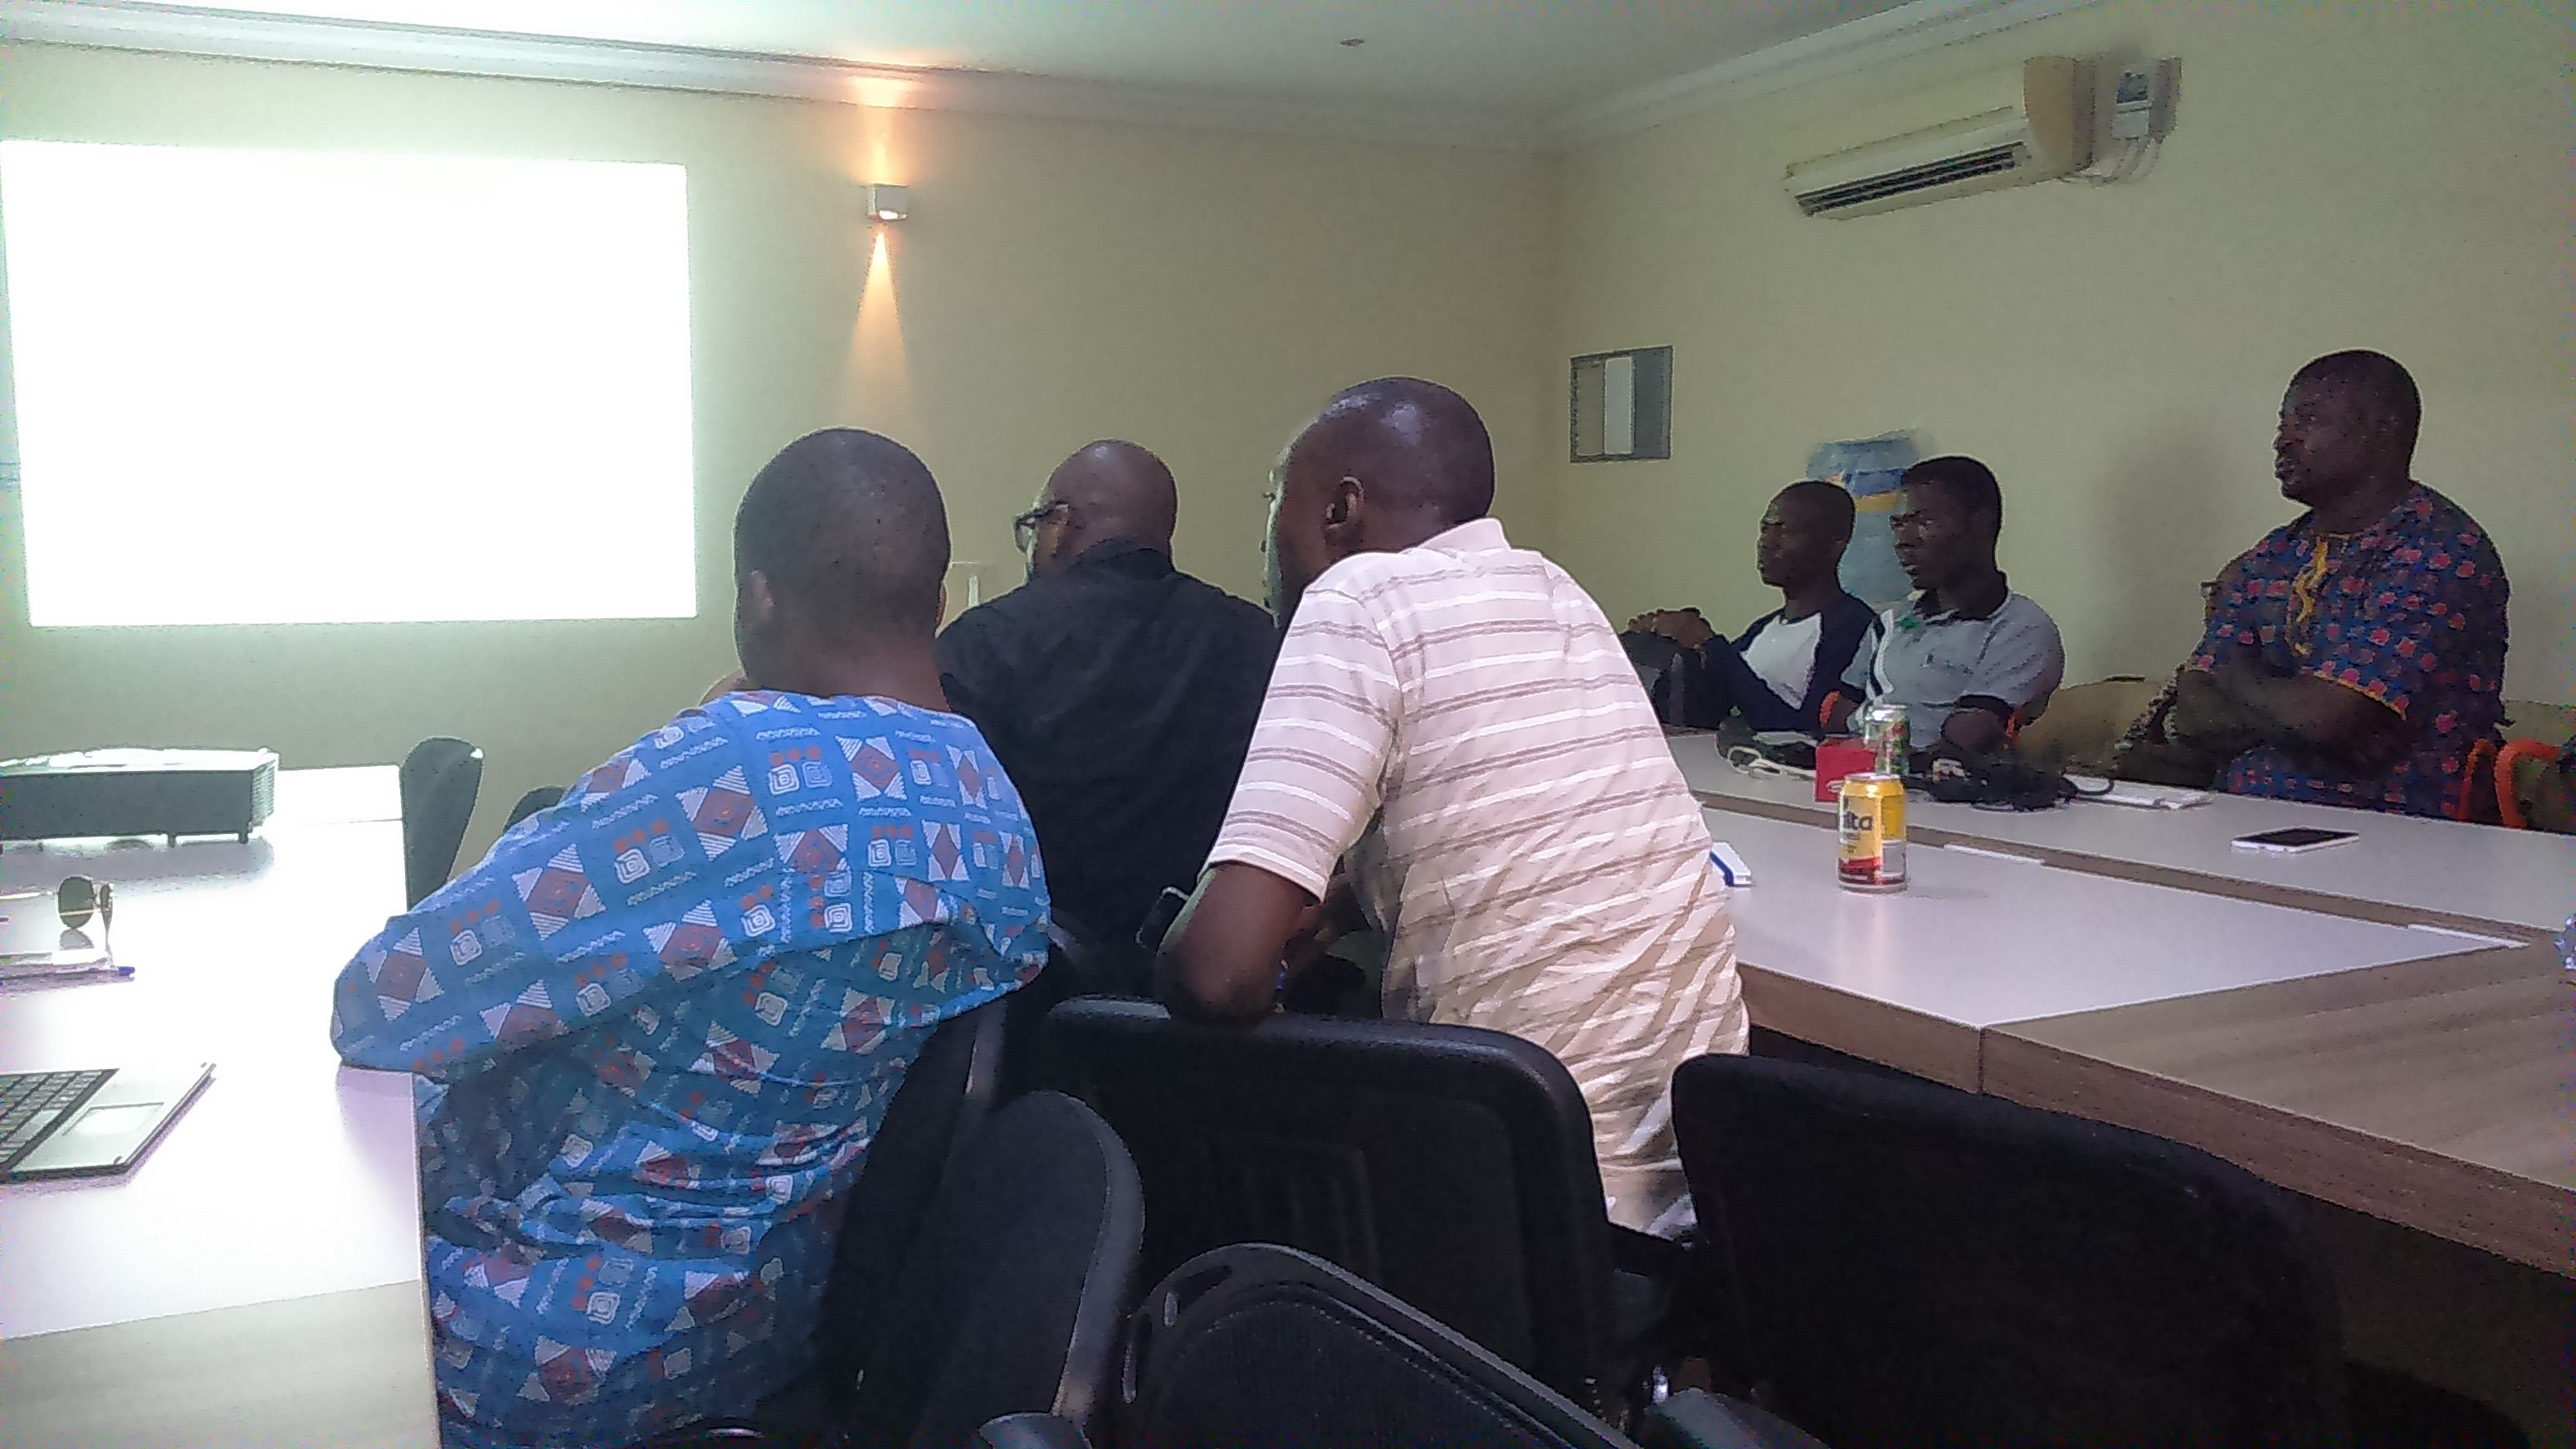 Lekki Data Science Meetup - IT Group in Nigeria